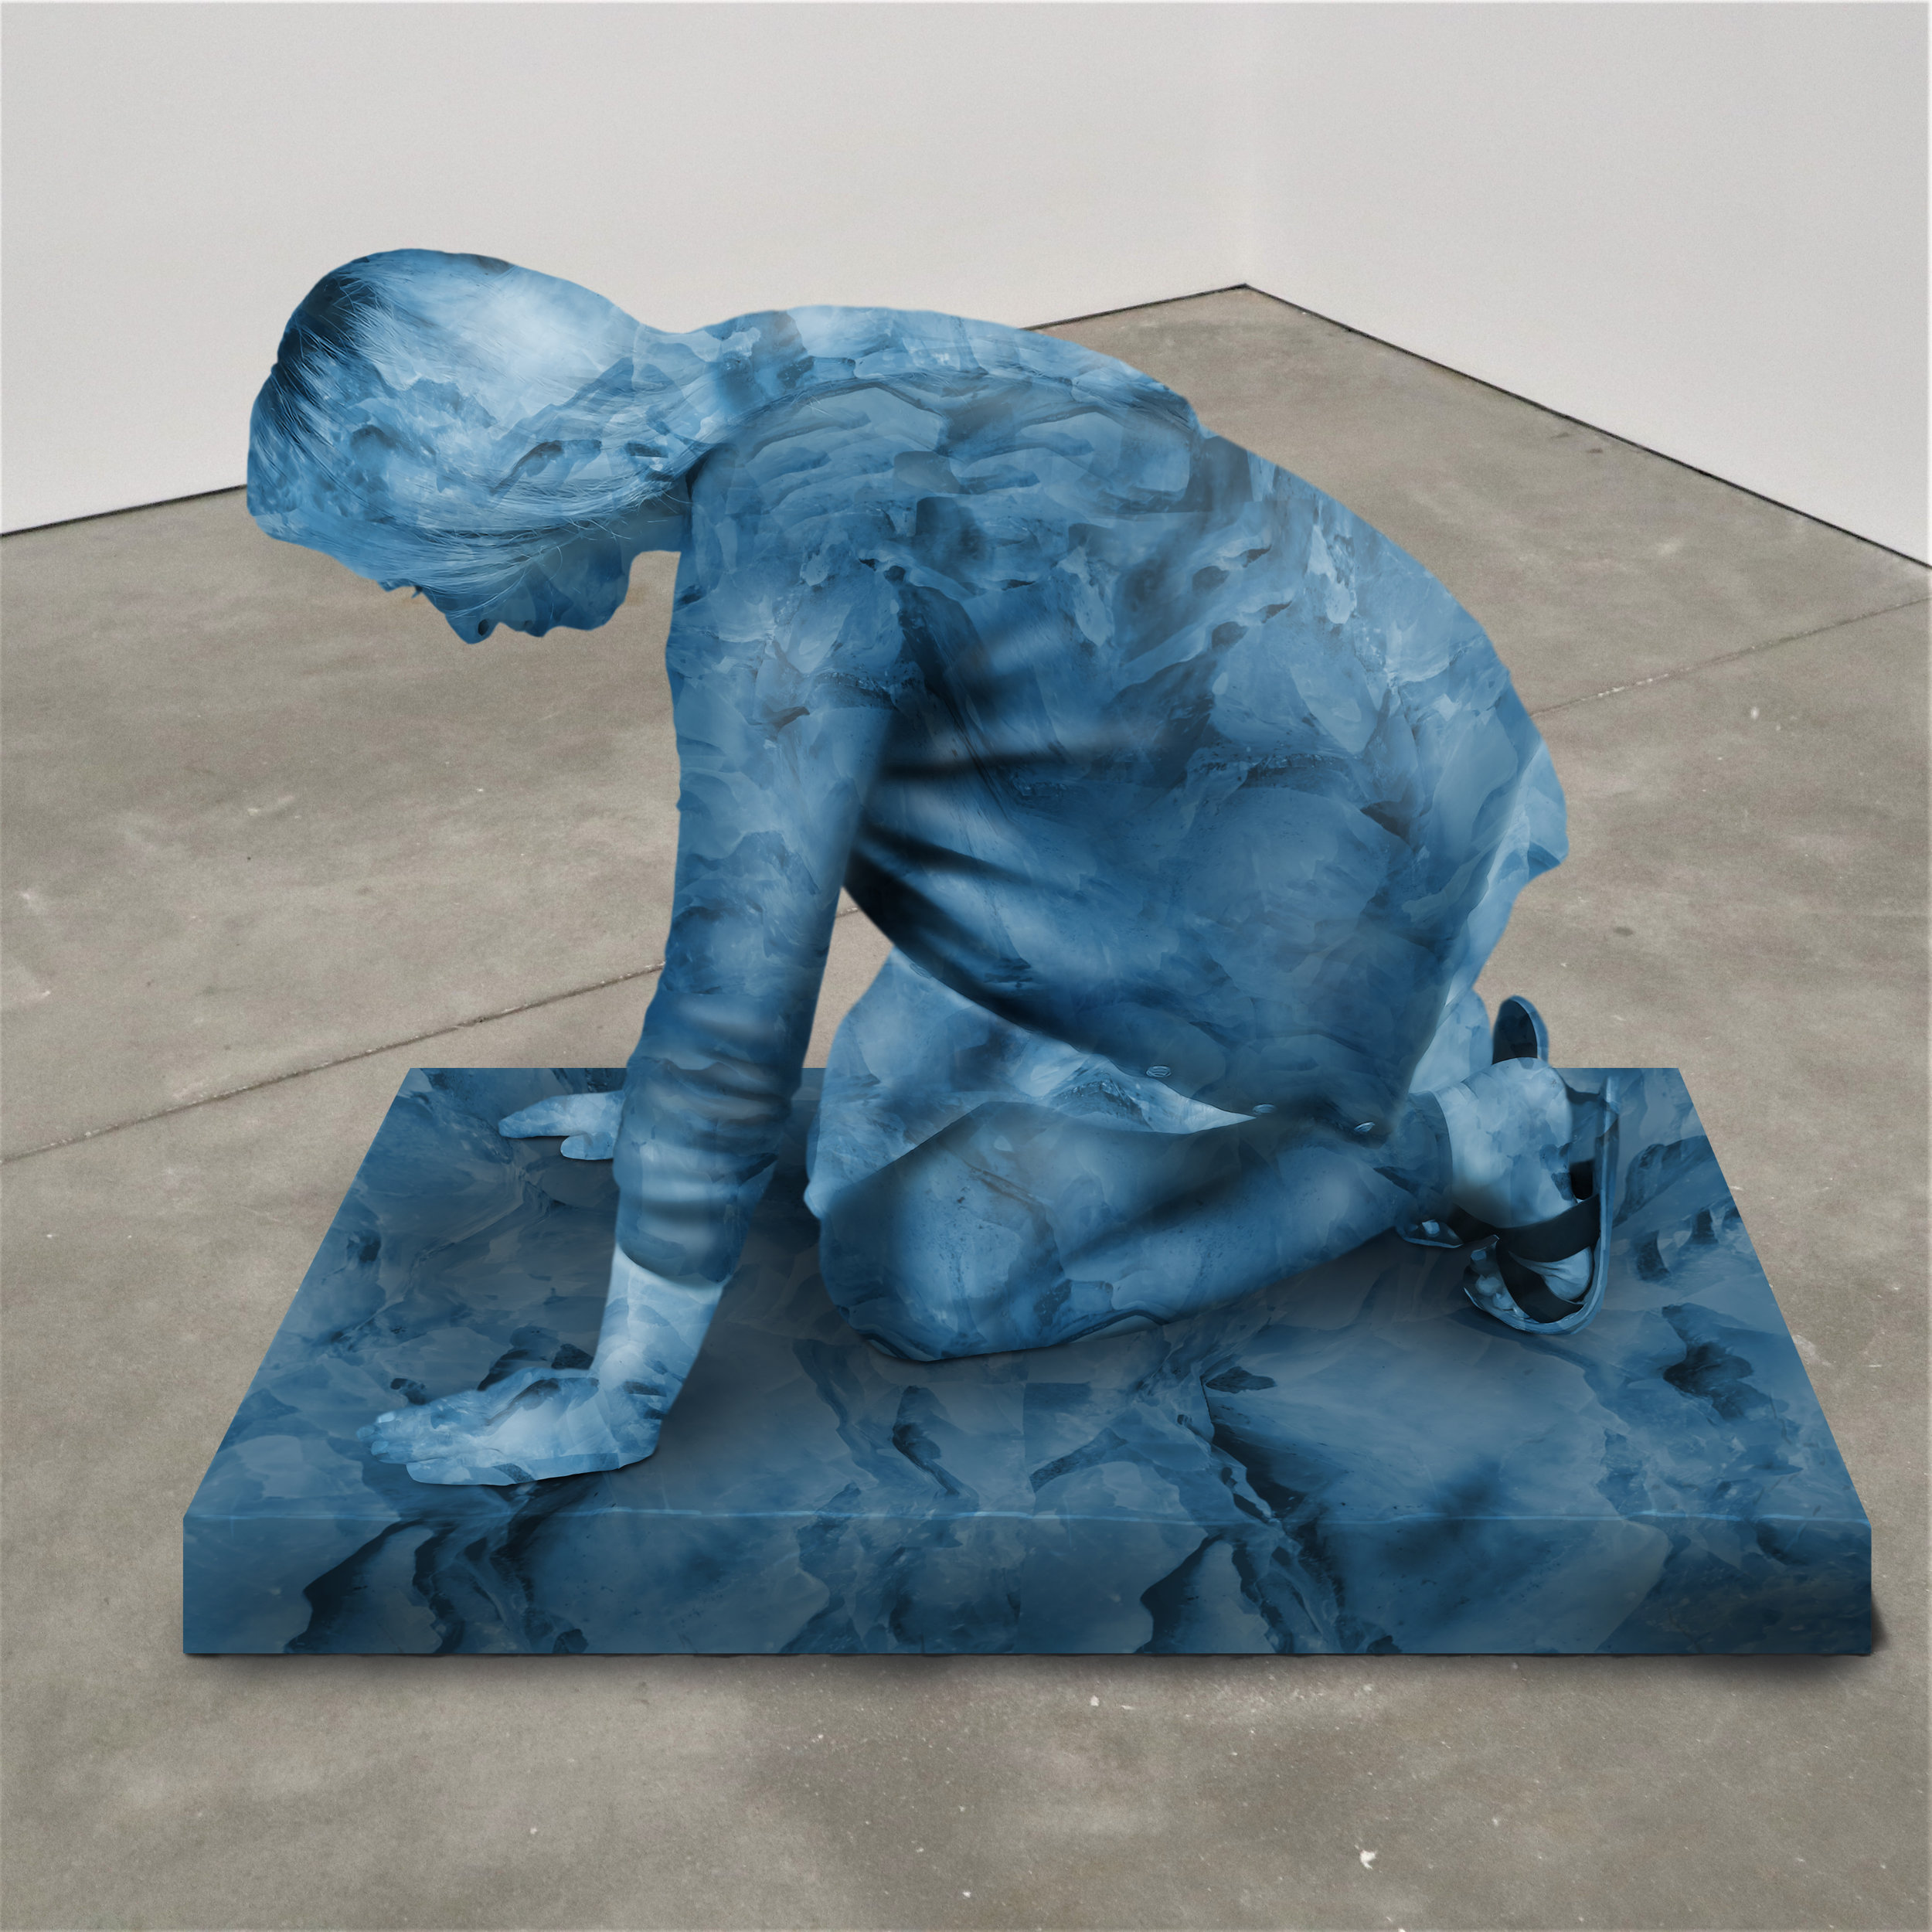 """Swallow the moon,"" lapis lazuli, Institute of Contemporary Art, Boston   2018  JPG  During an installation at the Institute of Contemporary Art in Boston, viewers were invited to imagine themselves as statues in the ICA's permanent collection. Participants were photographed posing as a statue they felt represented themselves, created a name for their fictional statue, and selected a stone from which their statue would be made. Professional and amateur digital artists were commissioned to create renderings of the statues, which were superimposed on photos of the ICA's permanent collection gallery space."